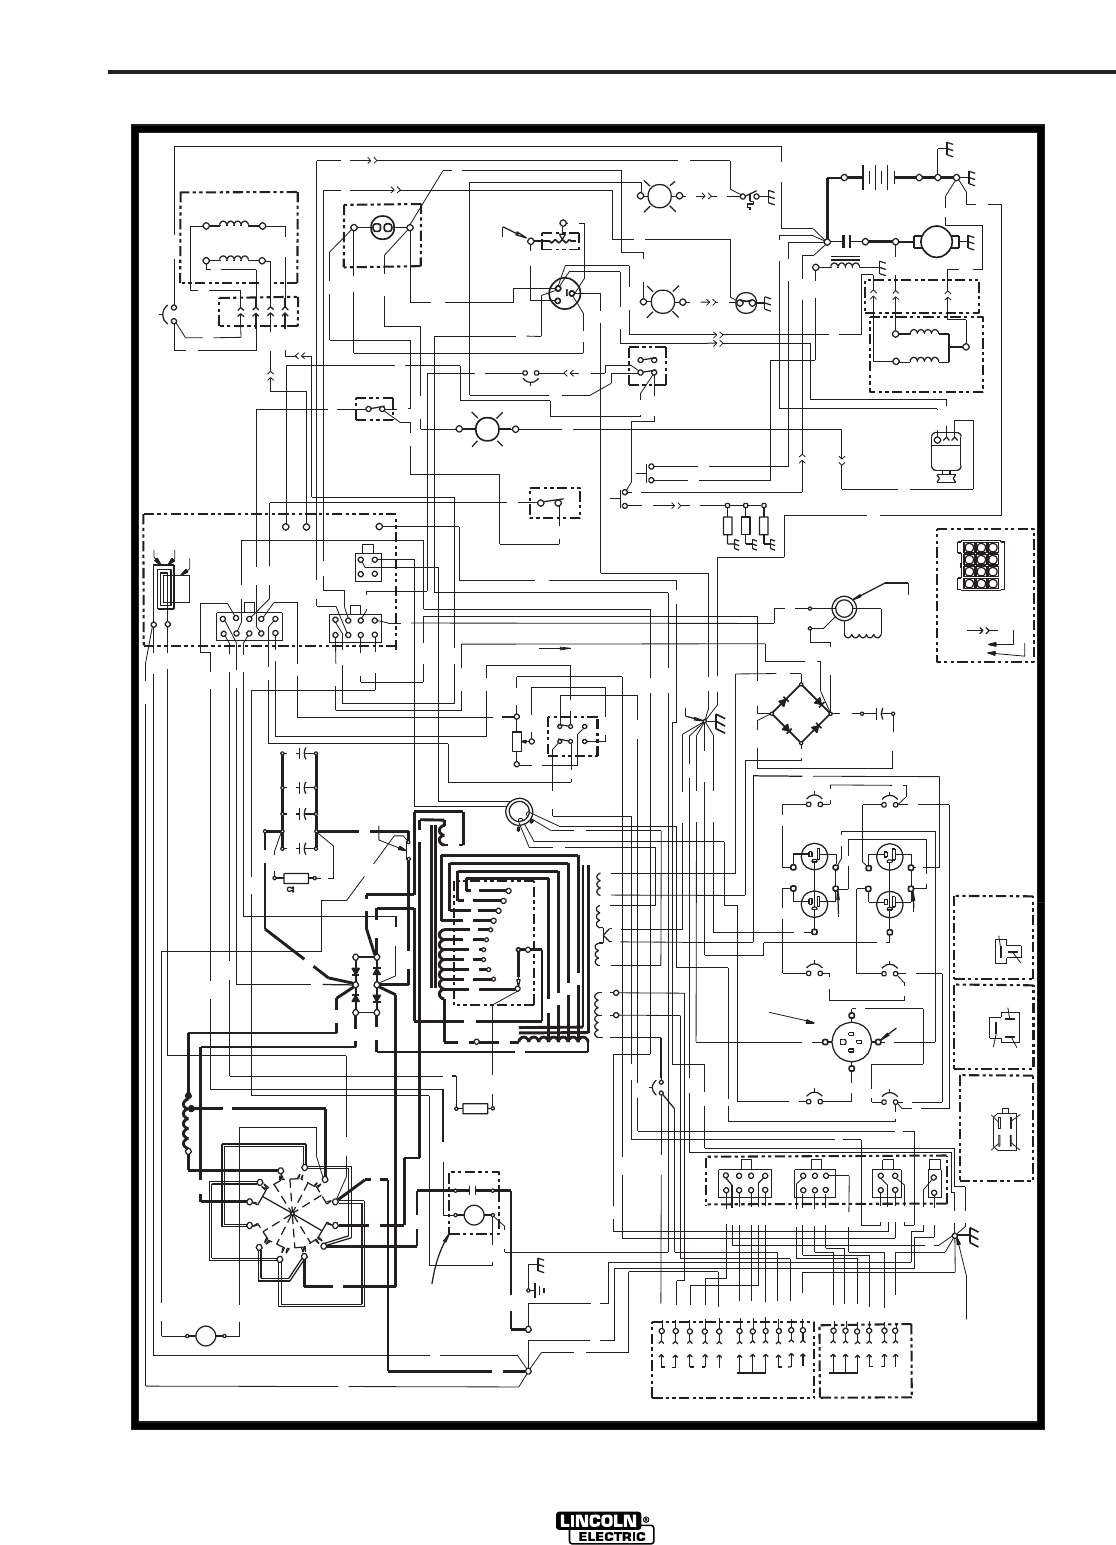 62a1363e f46d 4f39 a86d 13e2b3ea786f bg2f lincoln wiring diagram lincoln front suspension, 92 lincoln air 67 lincoln wiring diagram at mifinder.co